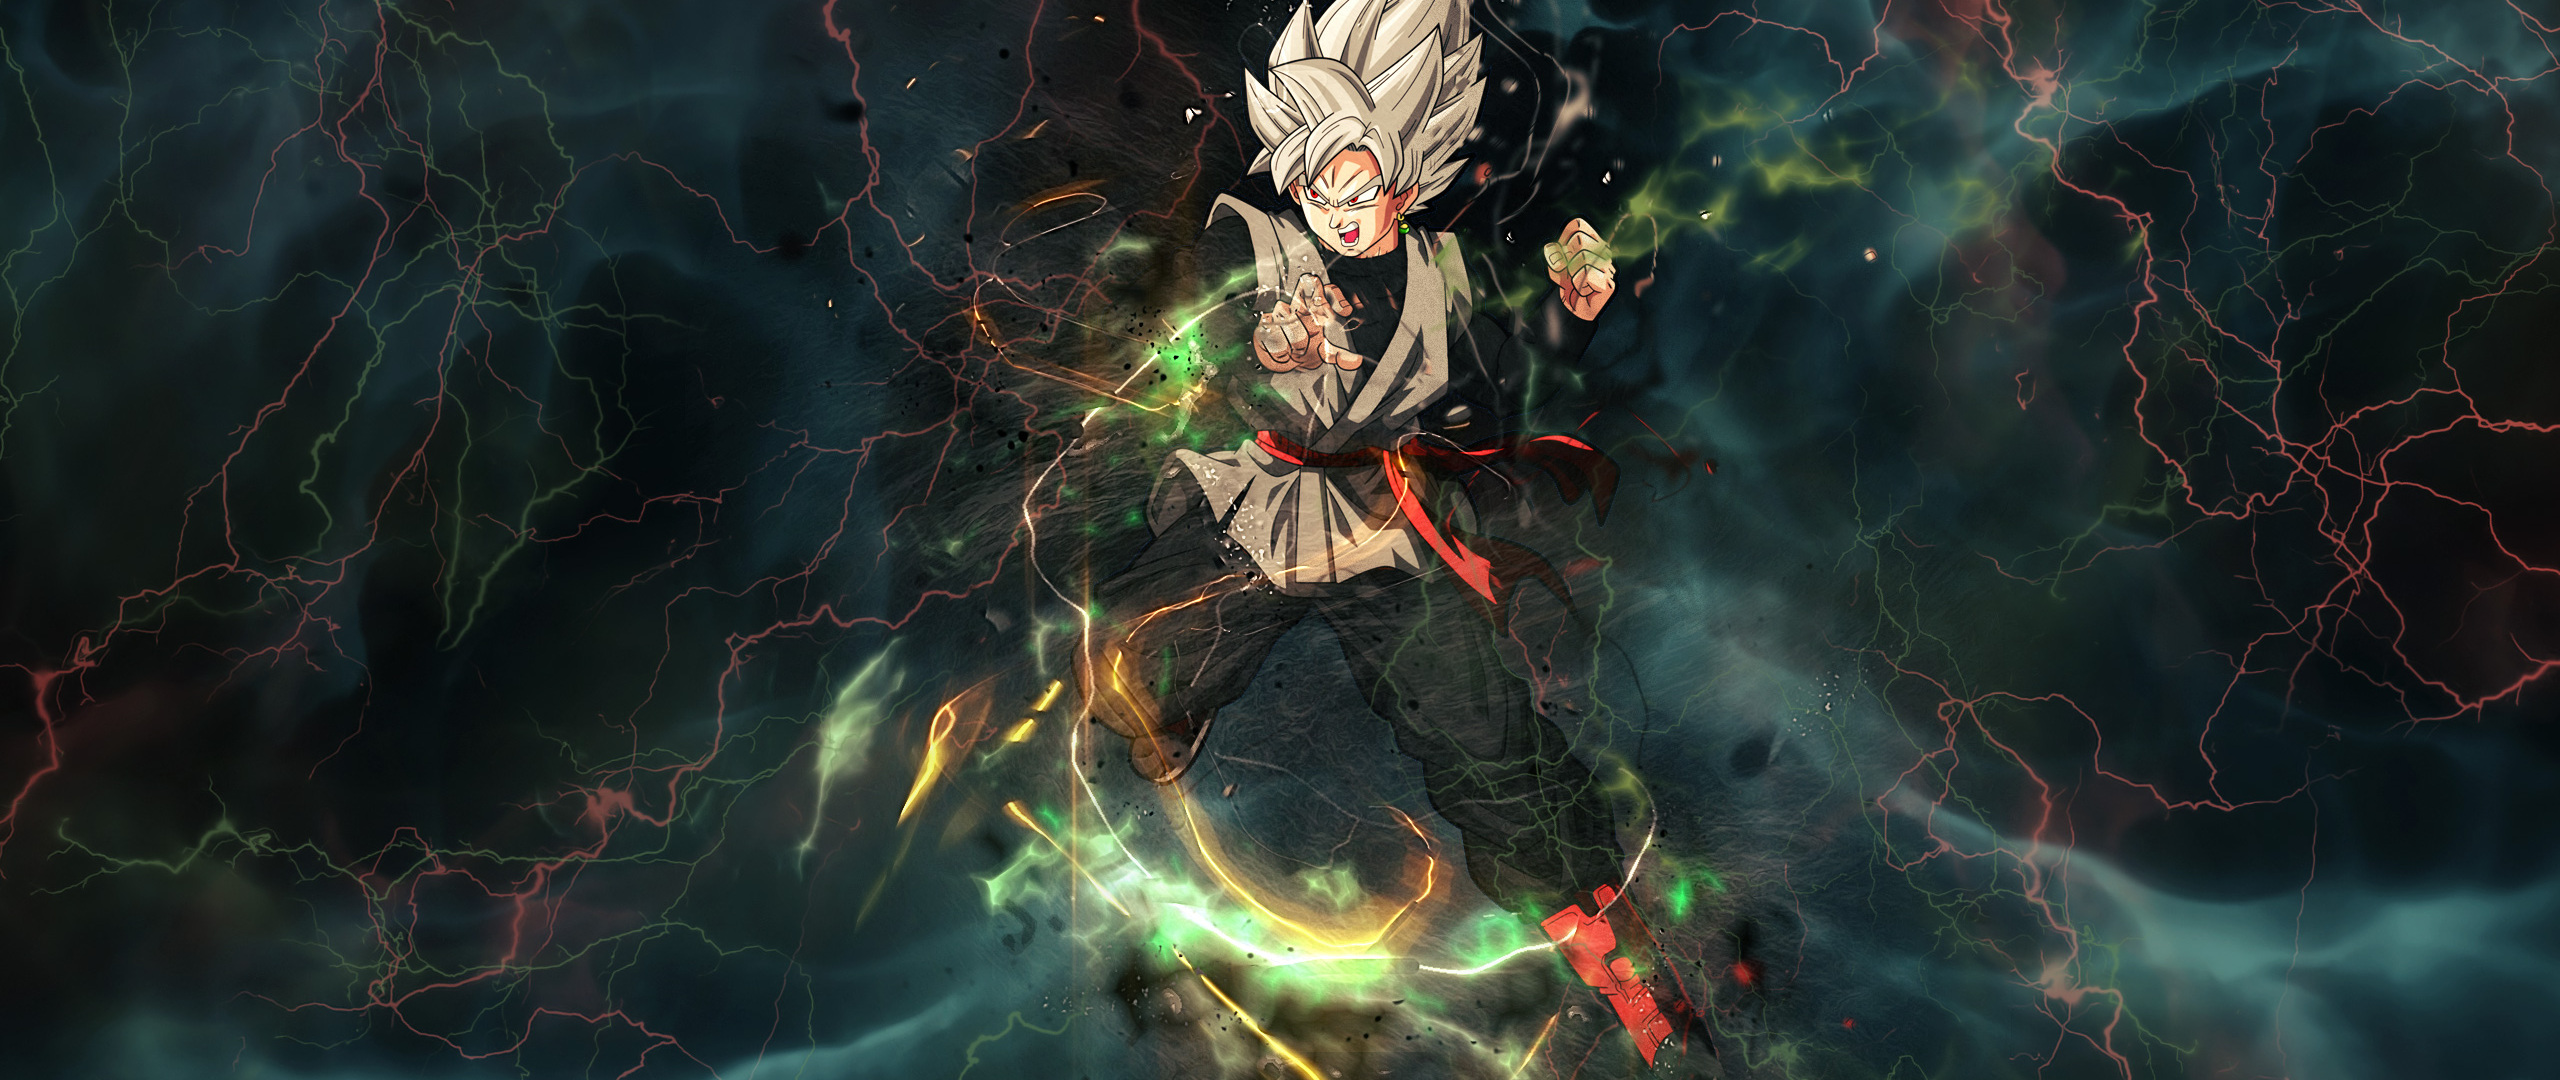 2560x1080 Black Goku Dragon Ball Super Anime Resolution HD 4k Wallpapers Images Backgrounds Photos And Pictures